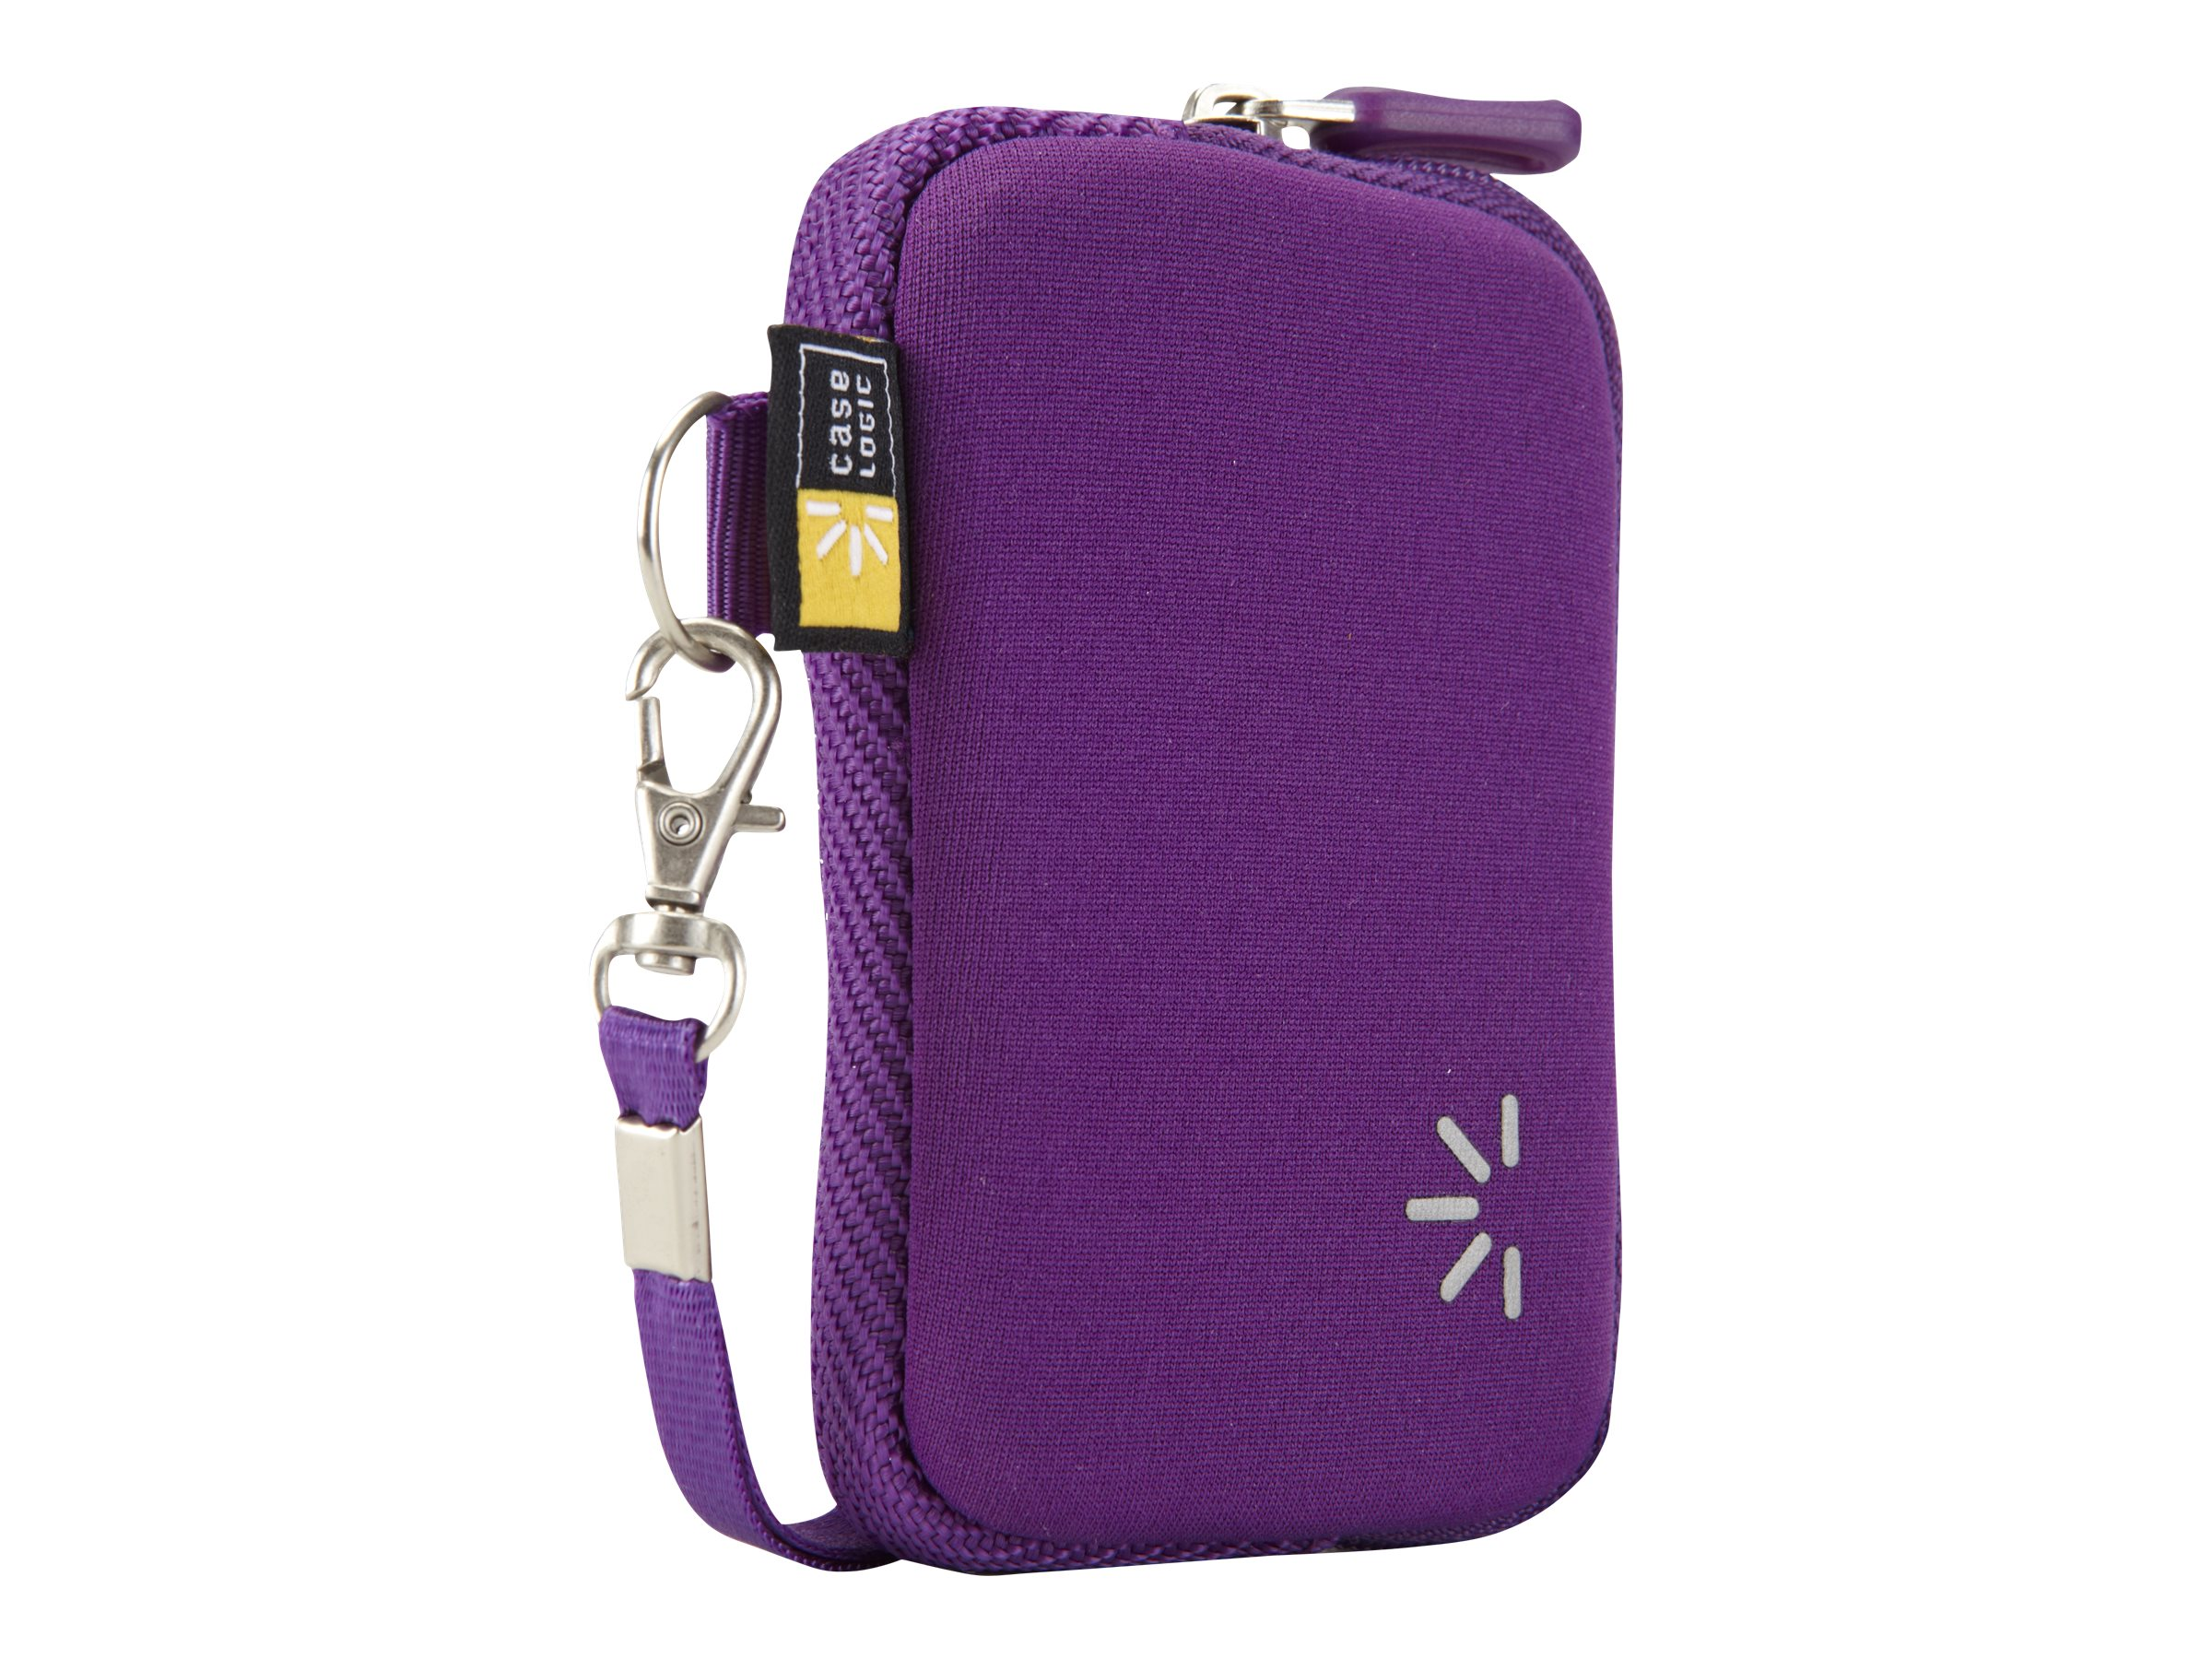 Case Logic Compact Point-and-Shoot Camera Case, Purple, UNZB-202PURPLE, 31578841, Carrying Cases - Camera/Camcorder